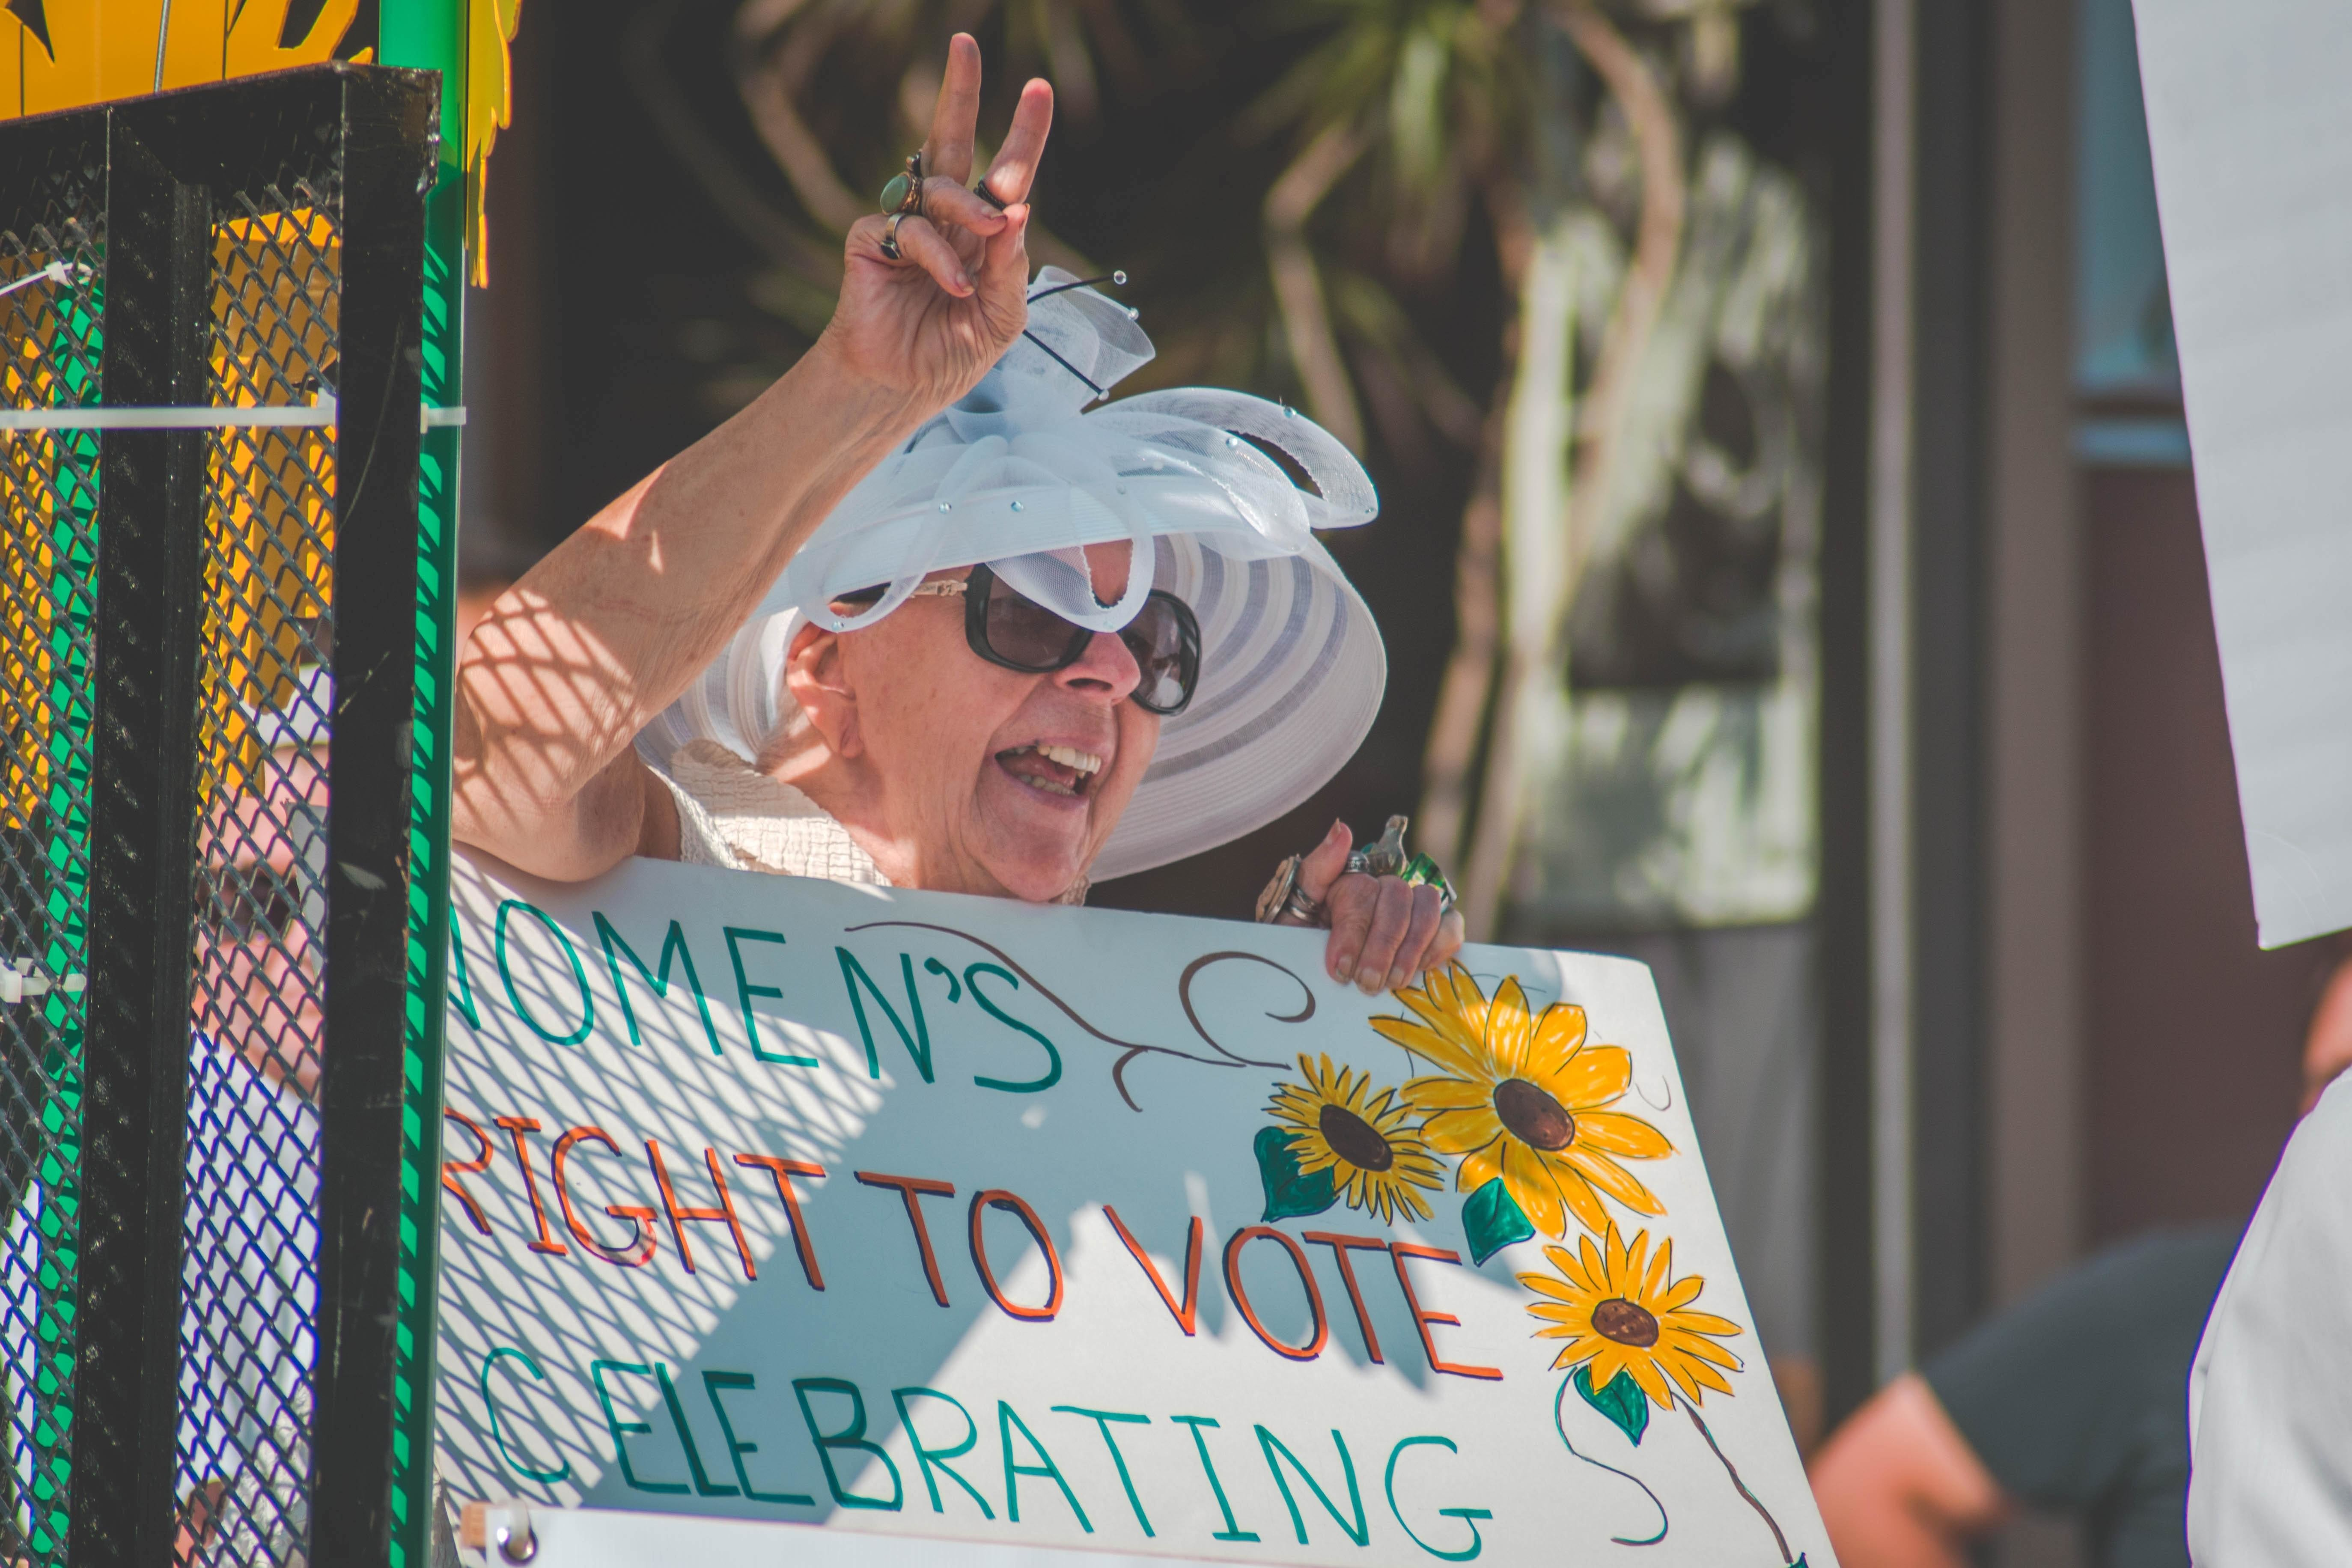 image of a woman holding up a sign celebrating women's right to vote